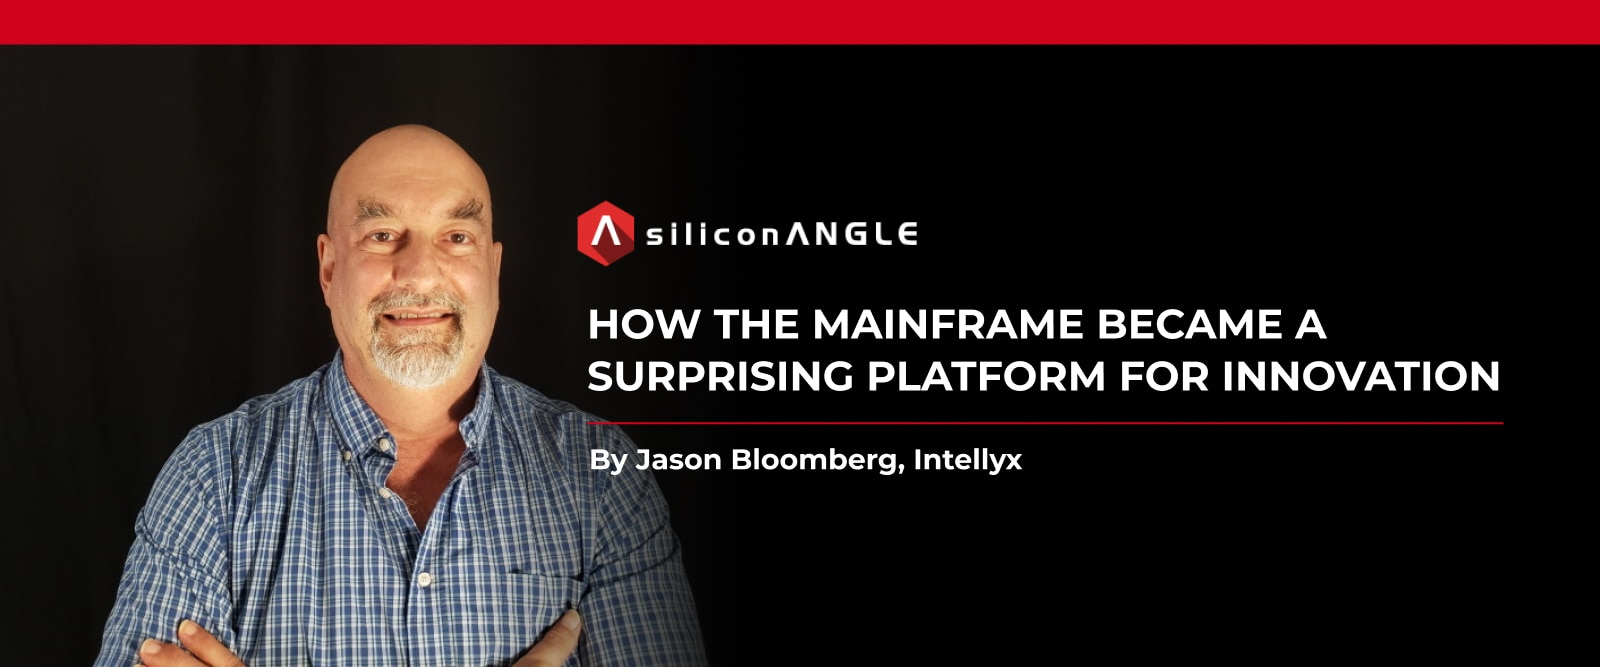 Intellyx Features VirtualZ and Mainframe Innovators in SiliconANGLE